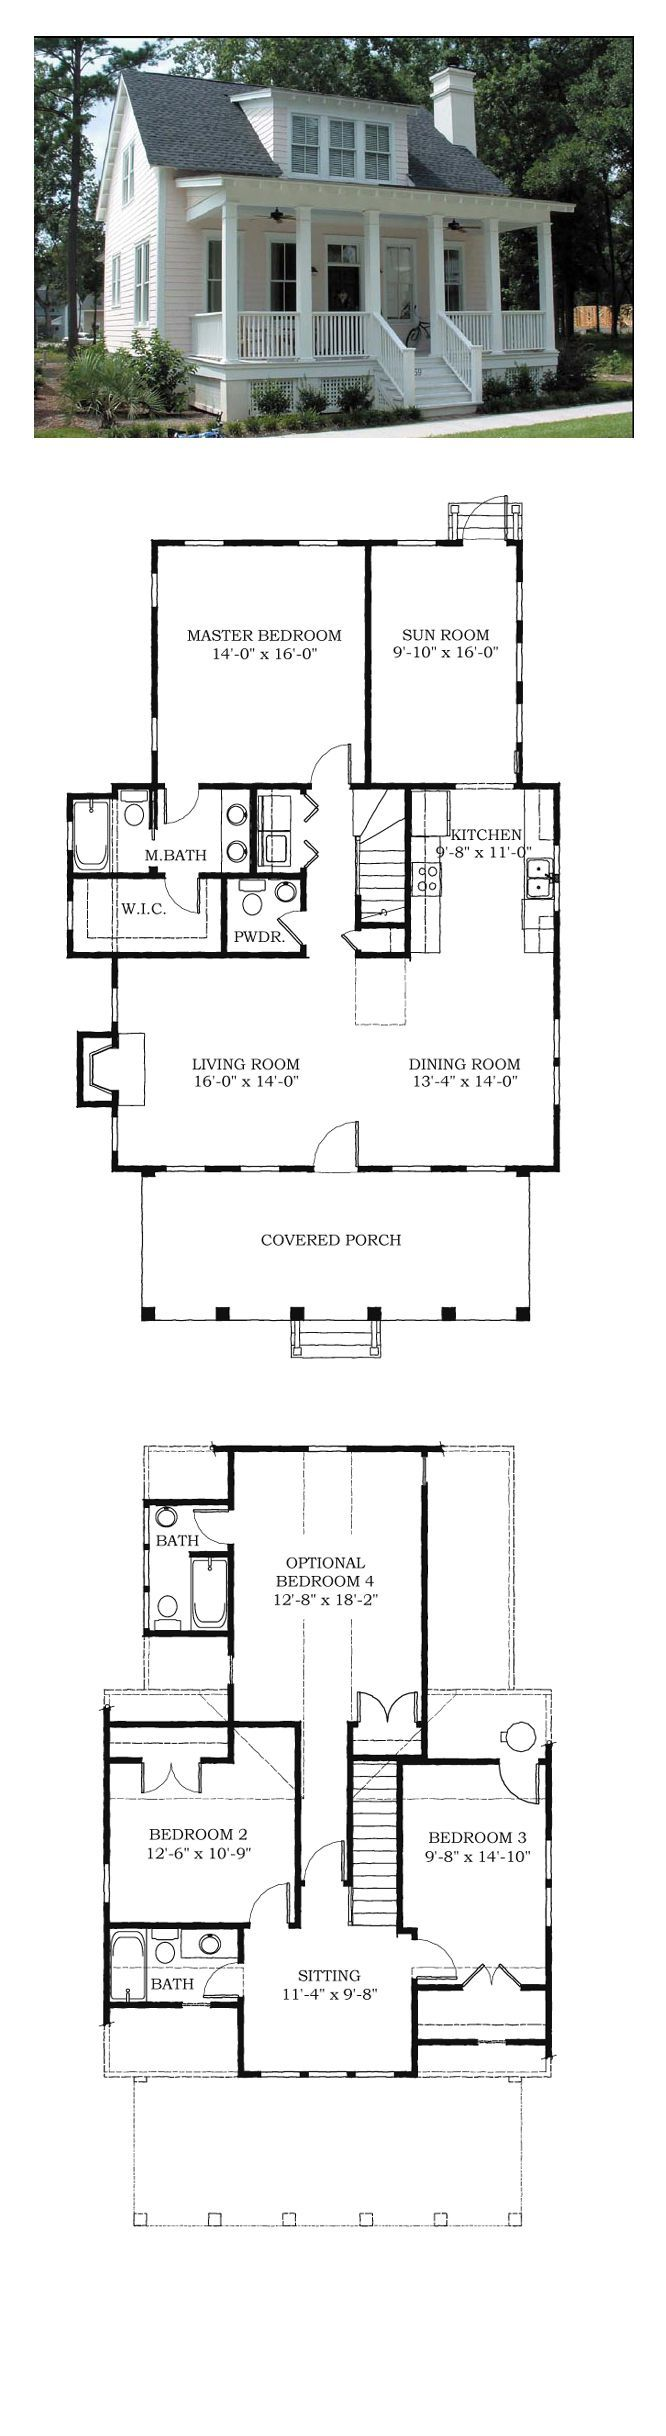 Drawn bedroom dining area 38703 House bedroom house Area: